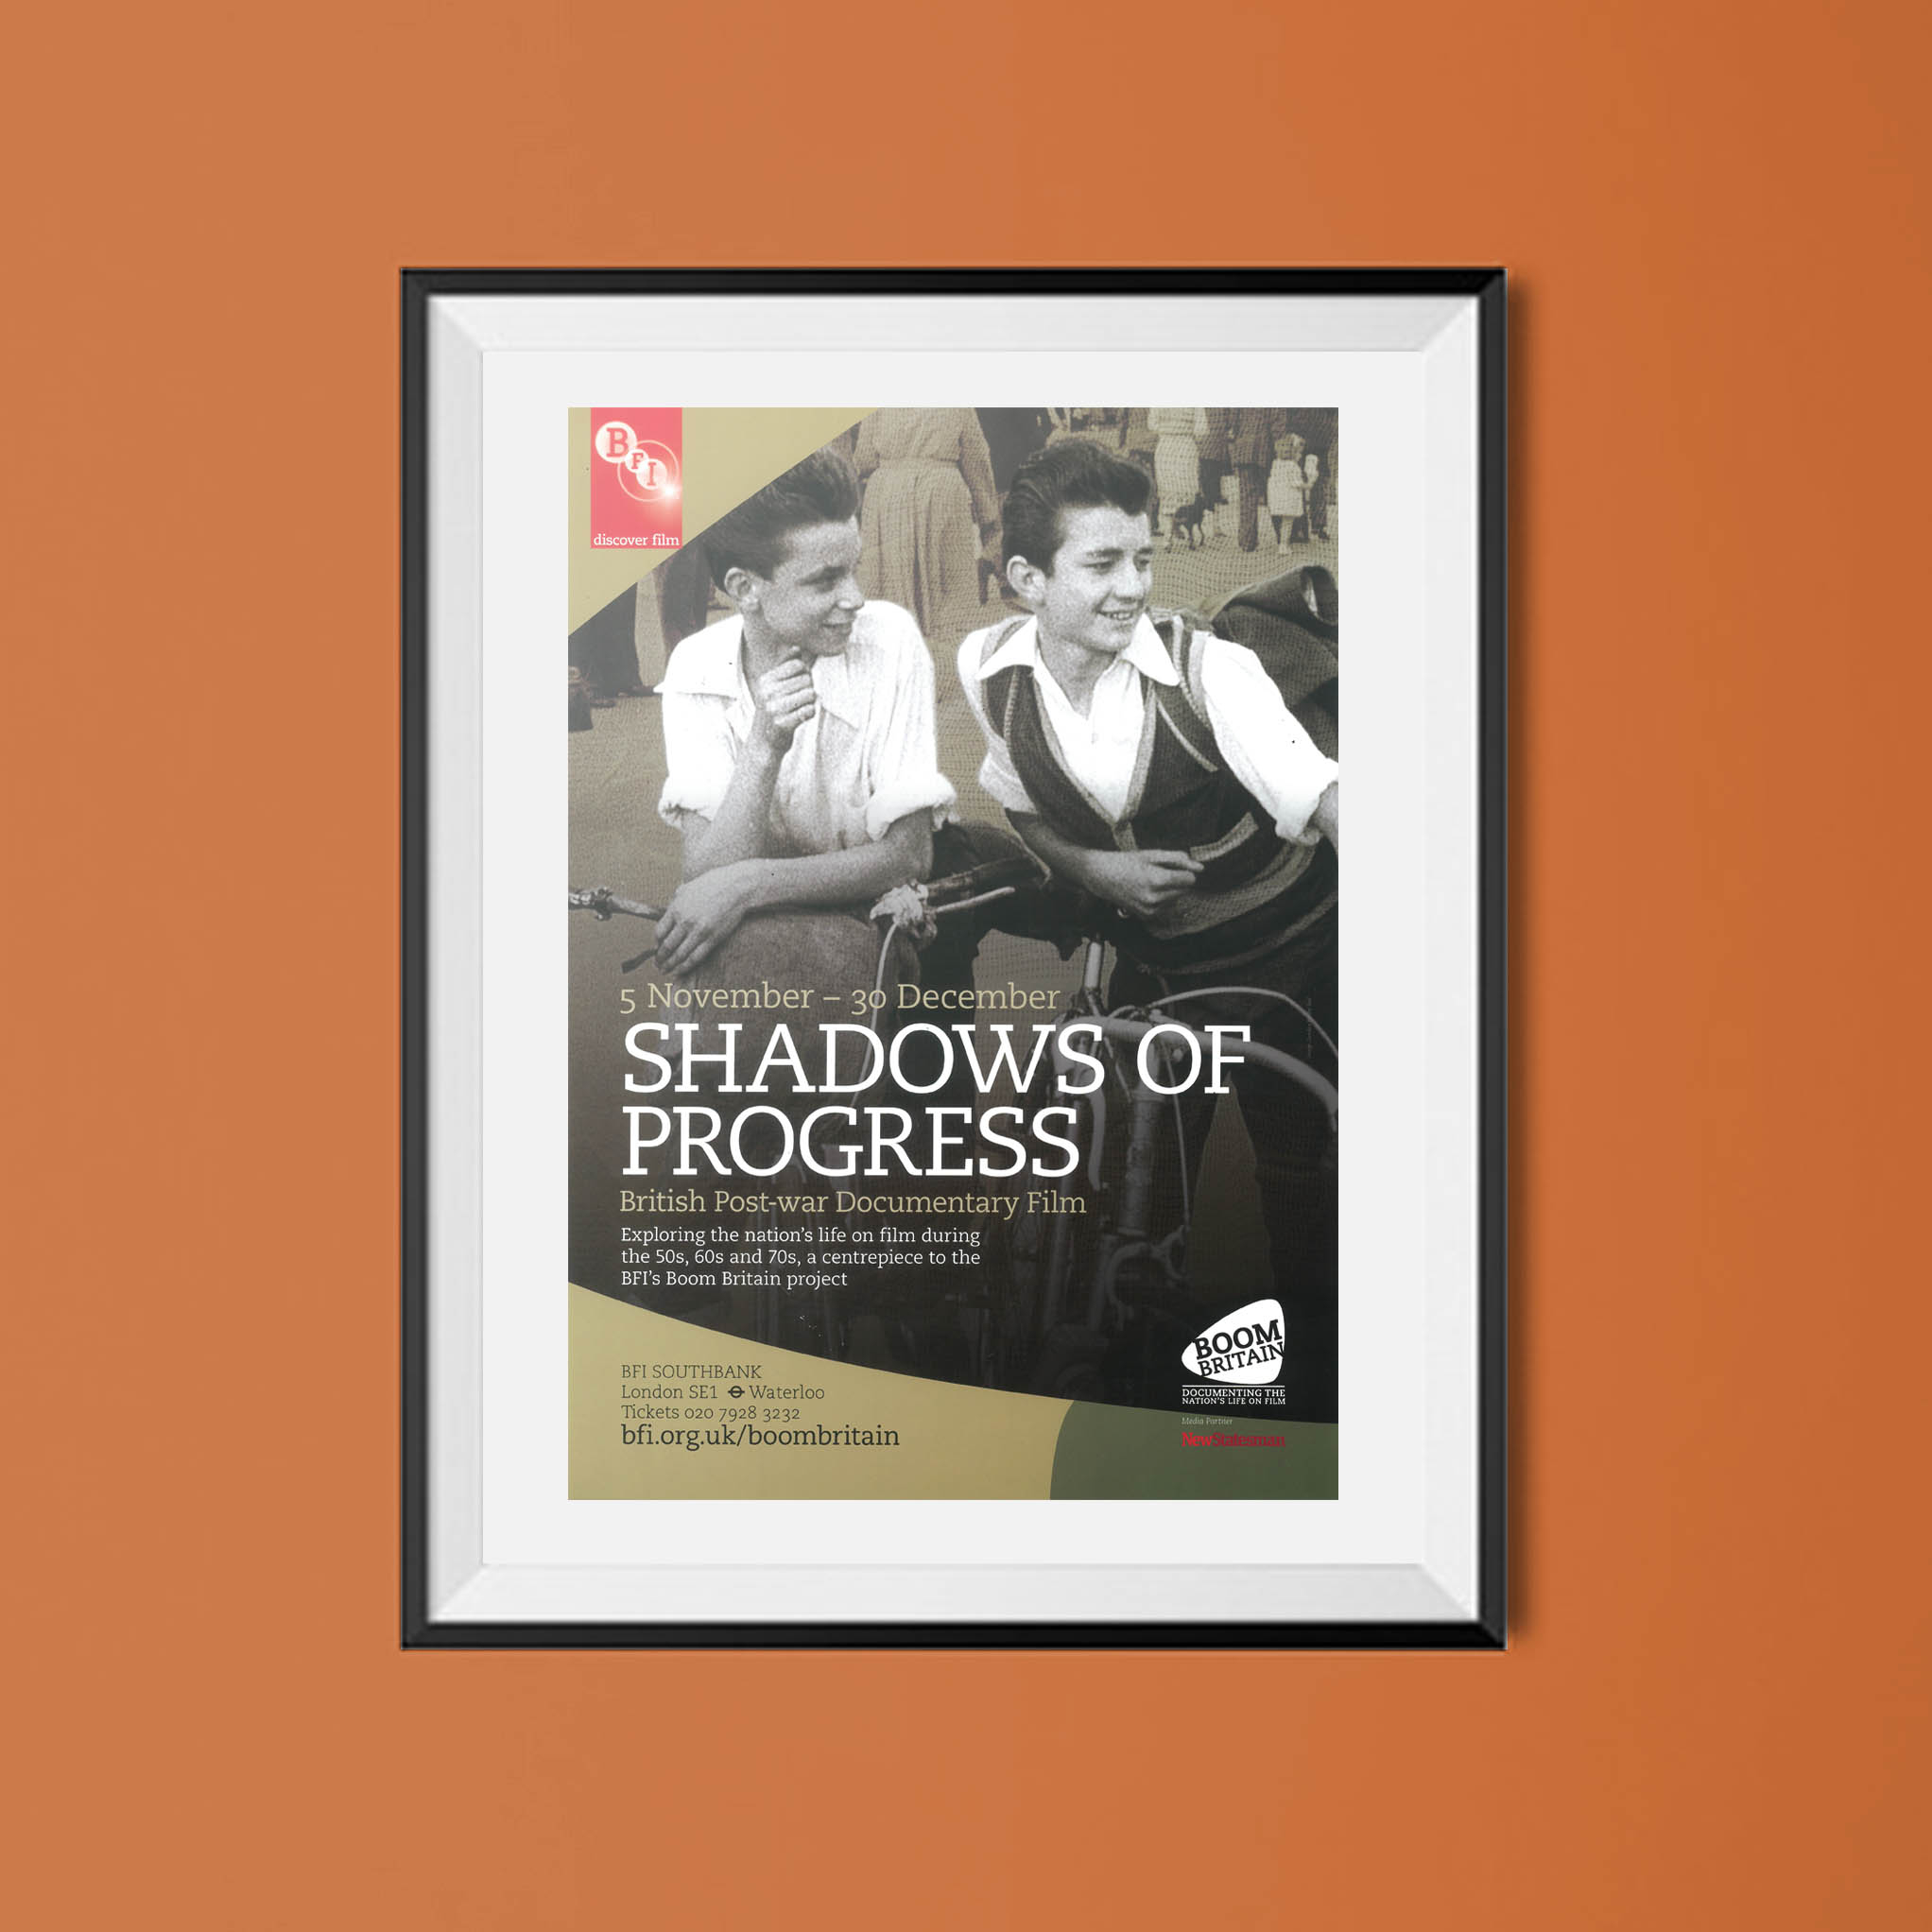 Buy Shadows of Progress BFI poster